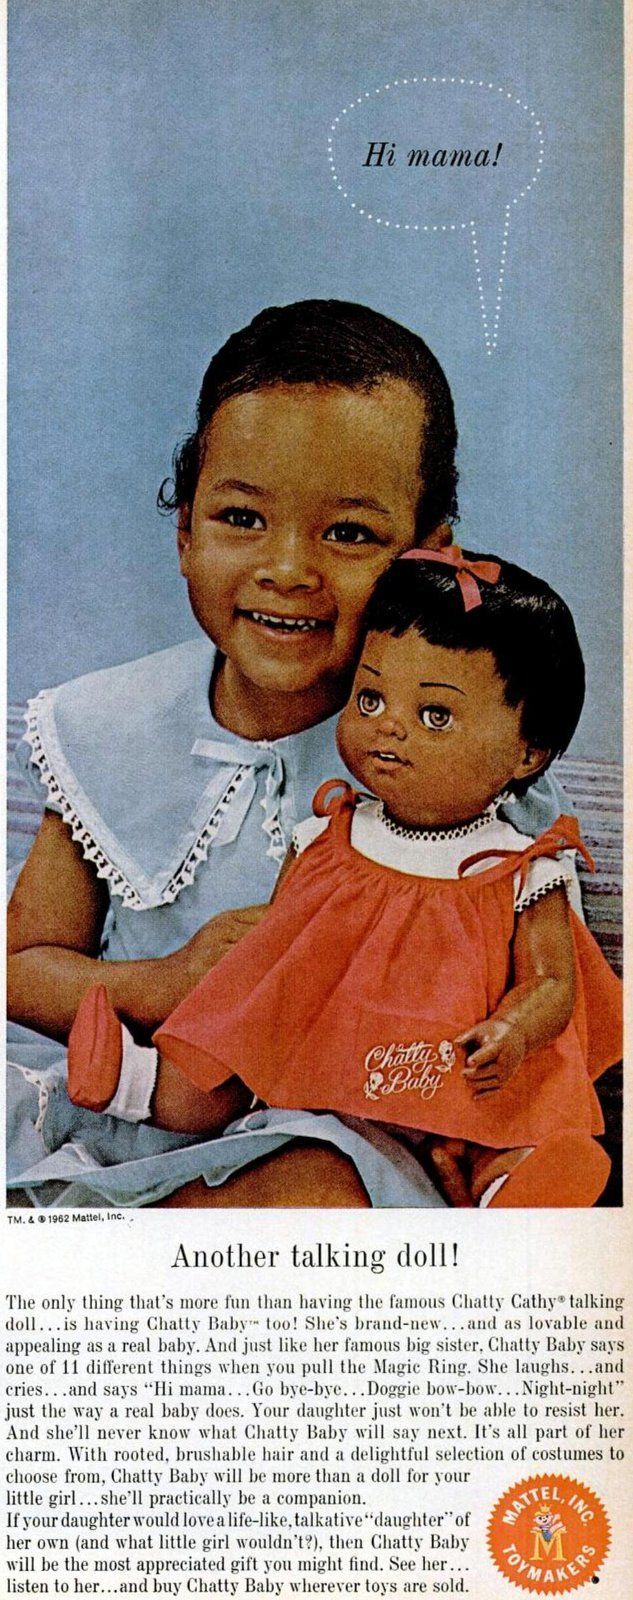 1962 Chatty Baby talking doll toy